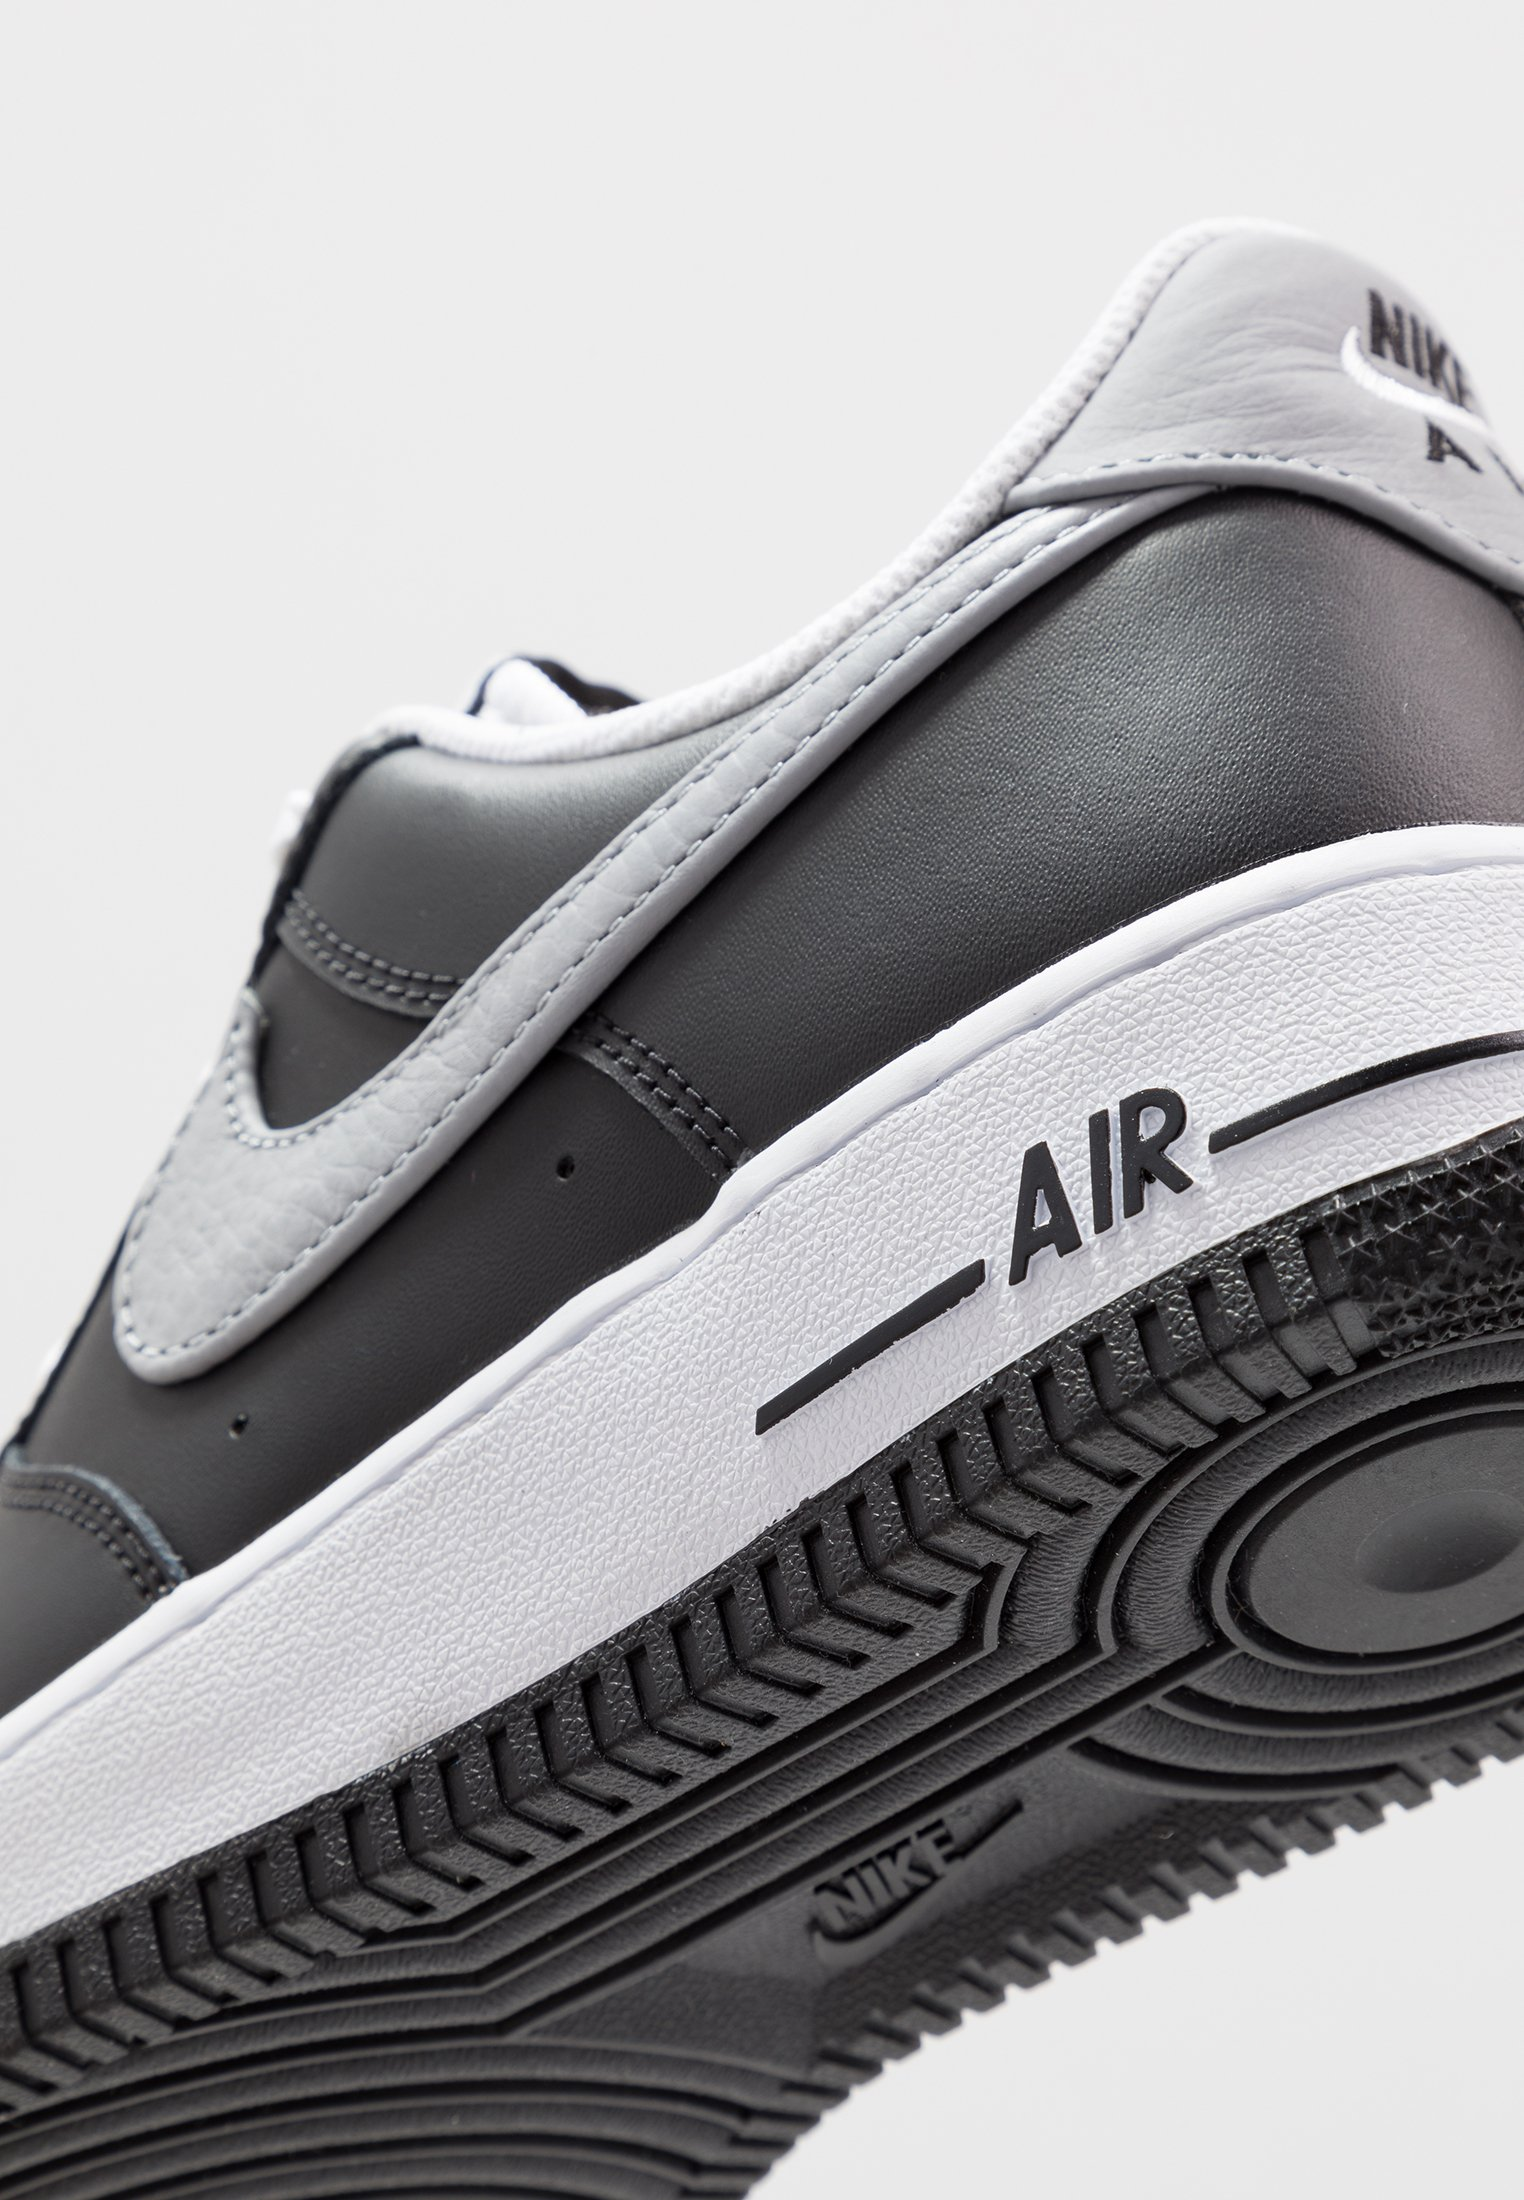 nike AIR FORCE 1 '07 LV8 2 BLACKWOLF GREY DARK GREY TOTAL